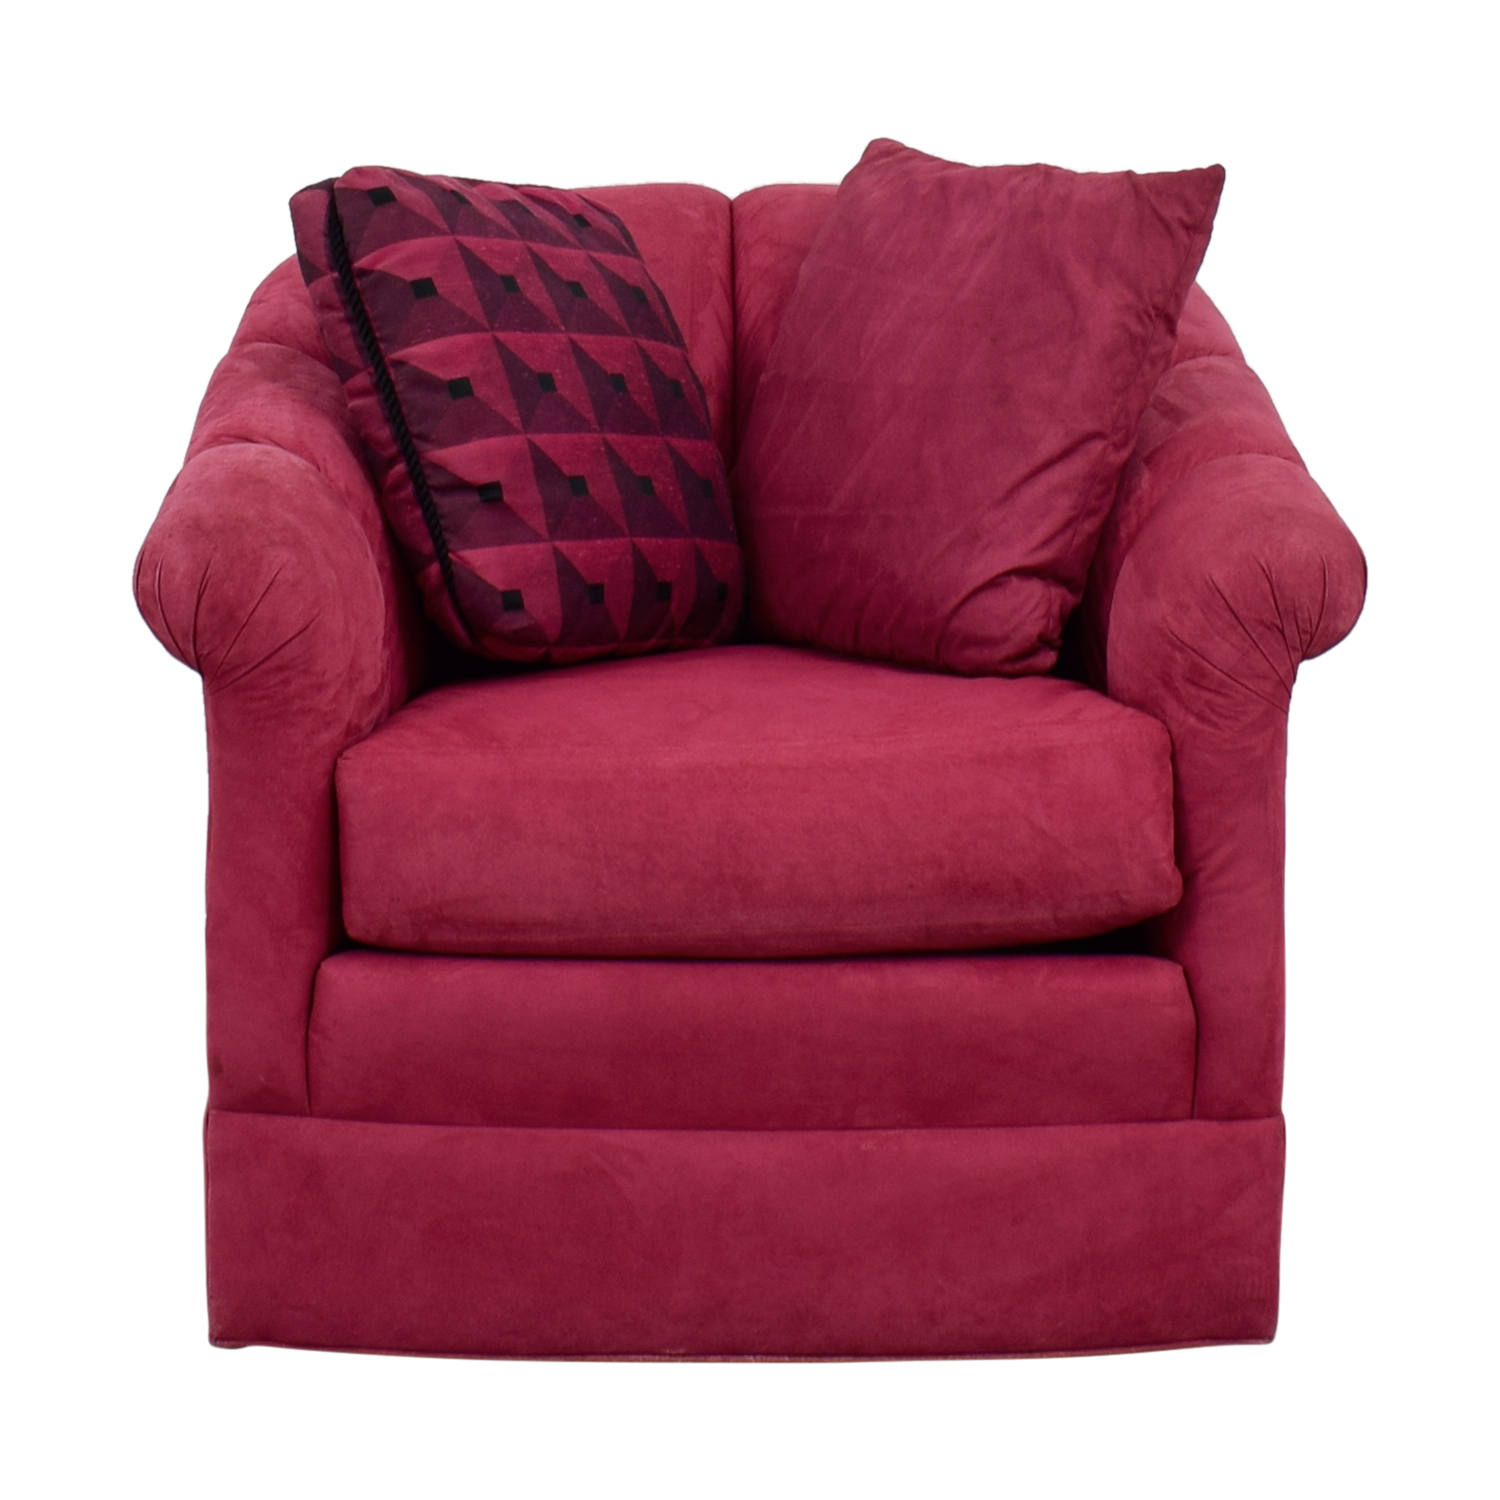 Magenta Curved Arm Accent Chair With Pillows Pink ...